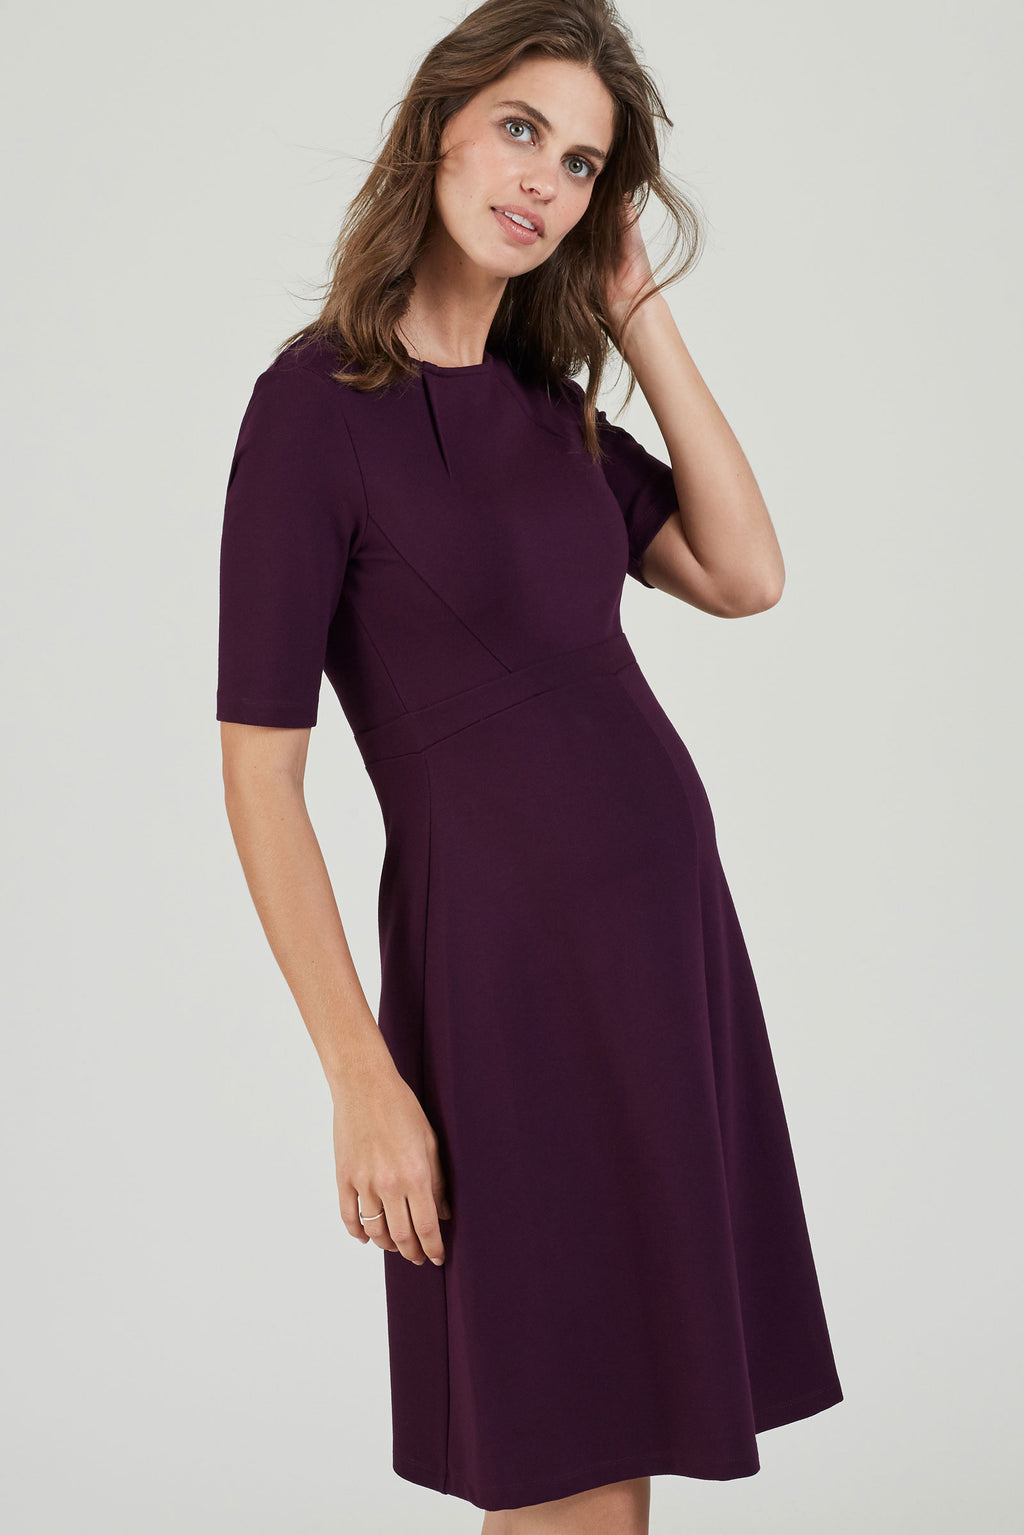 Isabella Oliver Kristen Ponte Maternity Dress - Seven Women Maternity